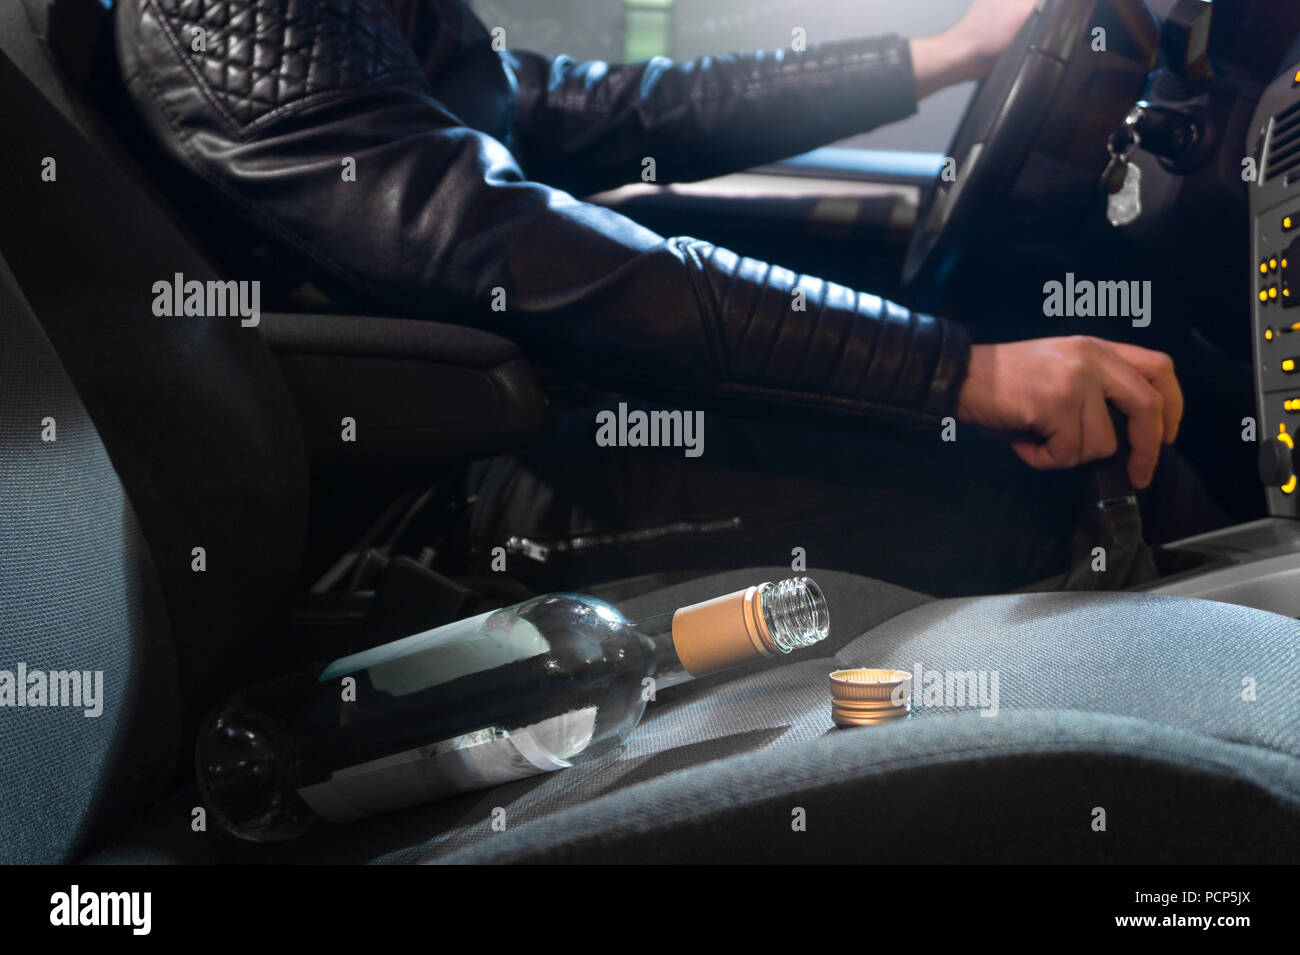 Drunk driving concept. Young man driving car under the influence of alcohol. Empty bottle of wine on front seat. Going away from party late at night.  - Stock Image